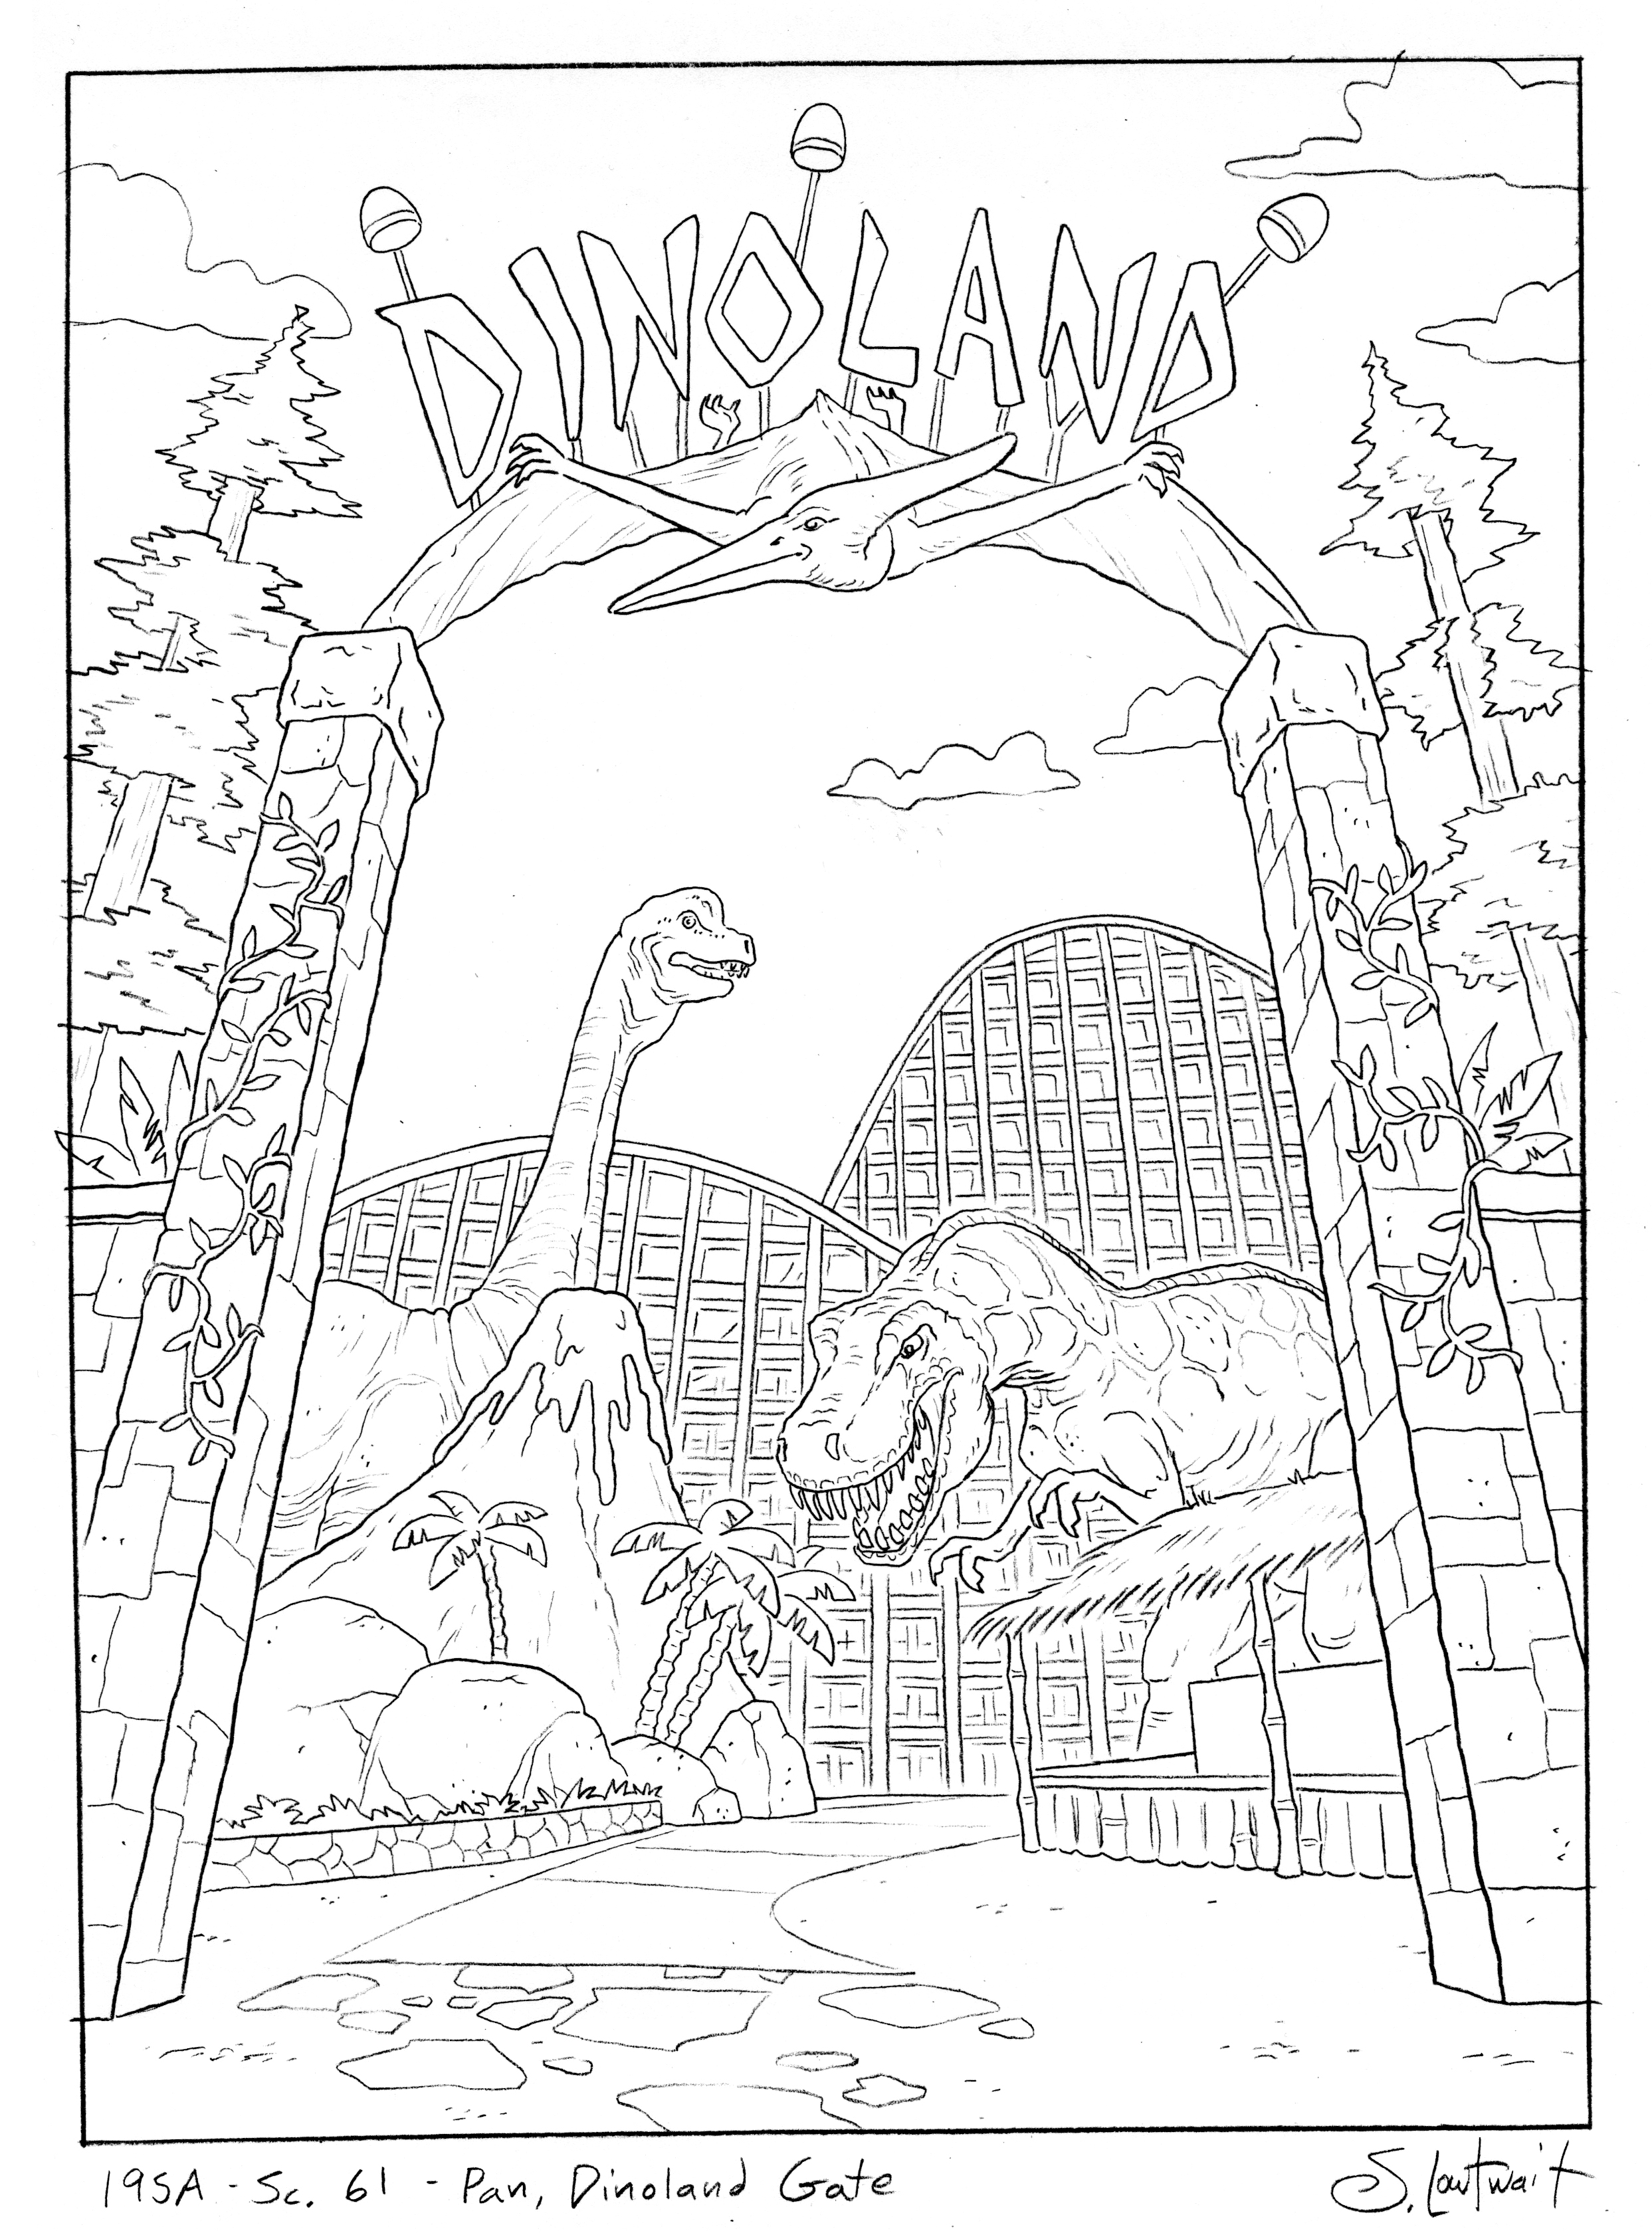 Dinoland.Dinosaurs = lots of fun to draw! You can't go wrong with a t-rex in a kid's TV show.